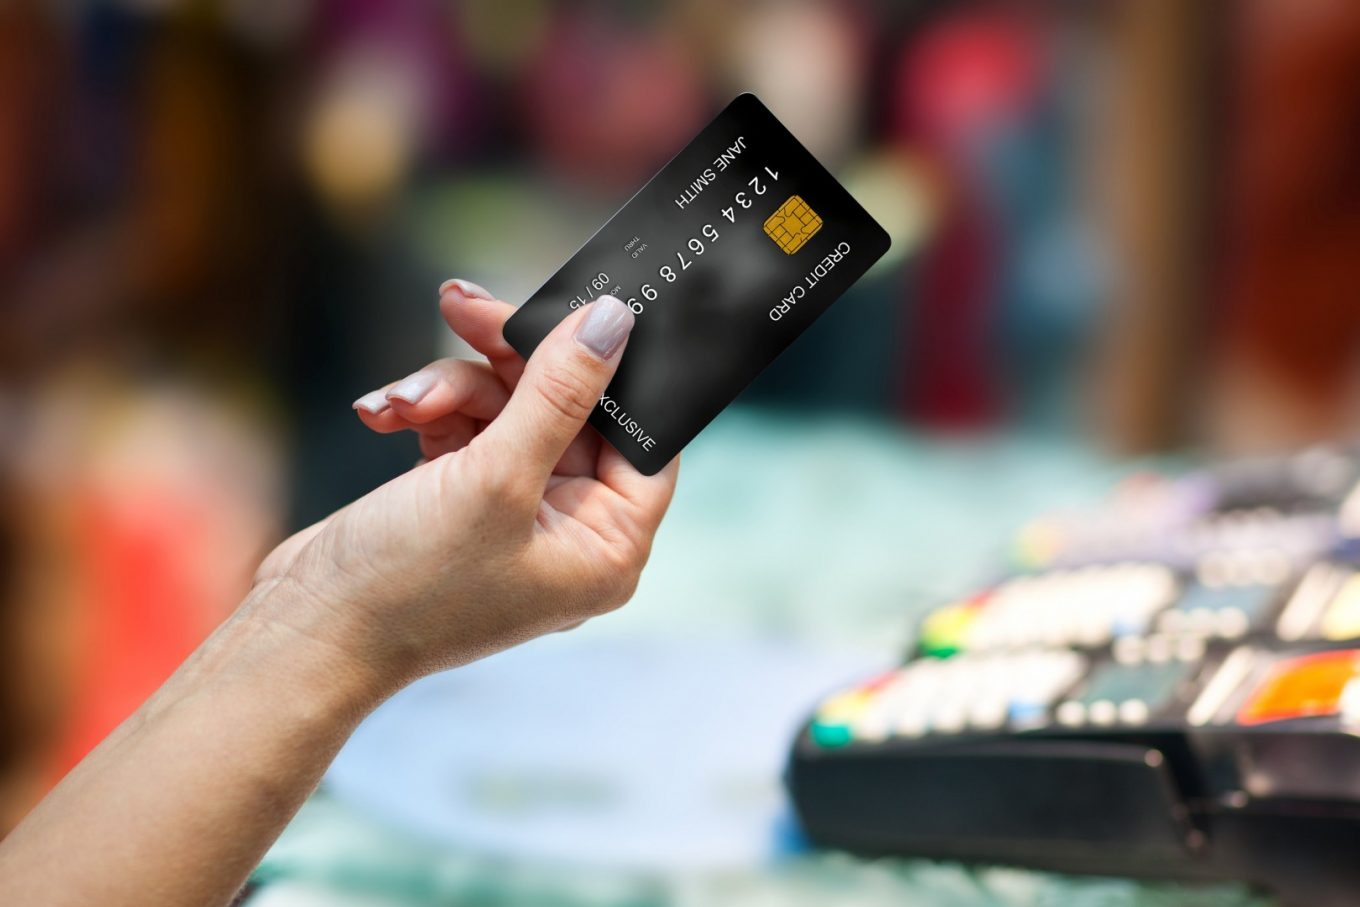 credit card - Pros and Cons of Using a Credit Card